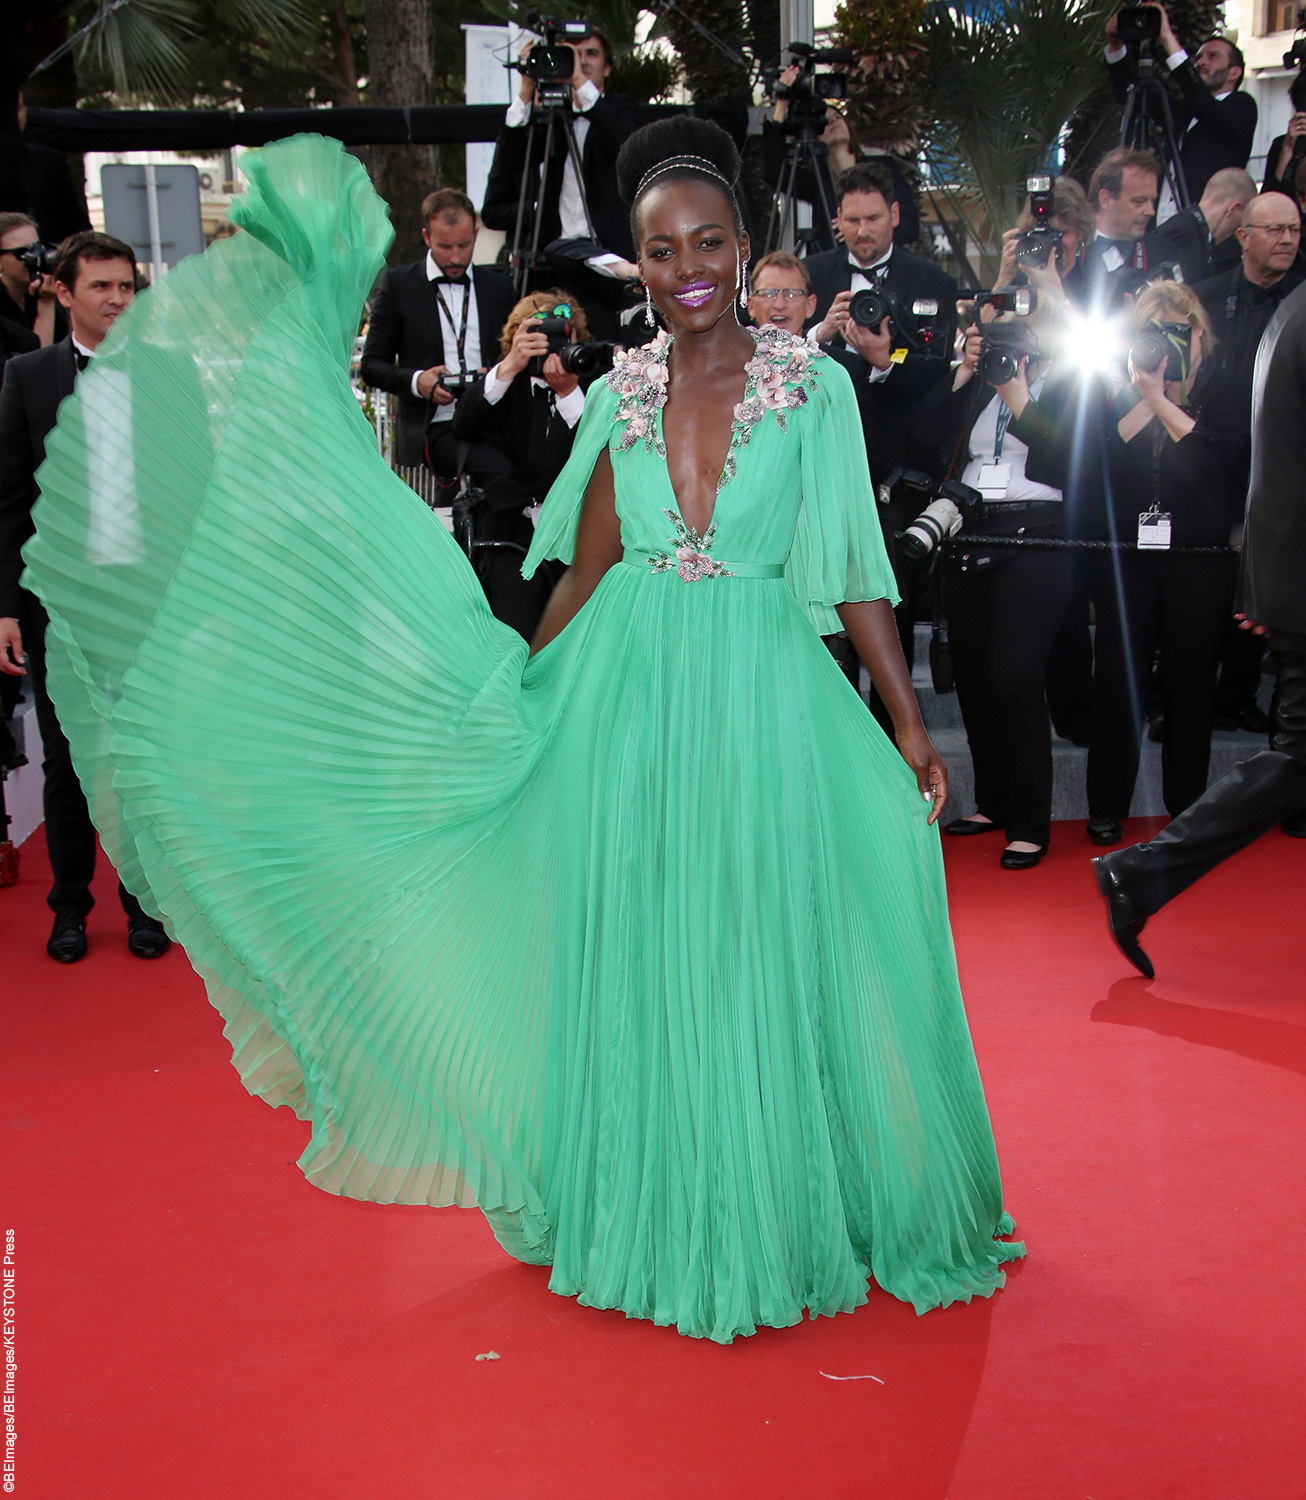 Style icon Lupita Nyong'o did not disappoint at this year's Cannes Film Festival. The beauty showed up in a breathtaking jade chiffon Gucci dress. The Oscar winner is not one to shy away from bright colors and looks absolutely amazing in her eye-catching dress and bright pink lipstick.